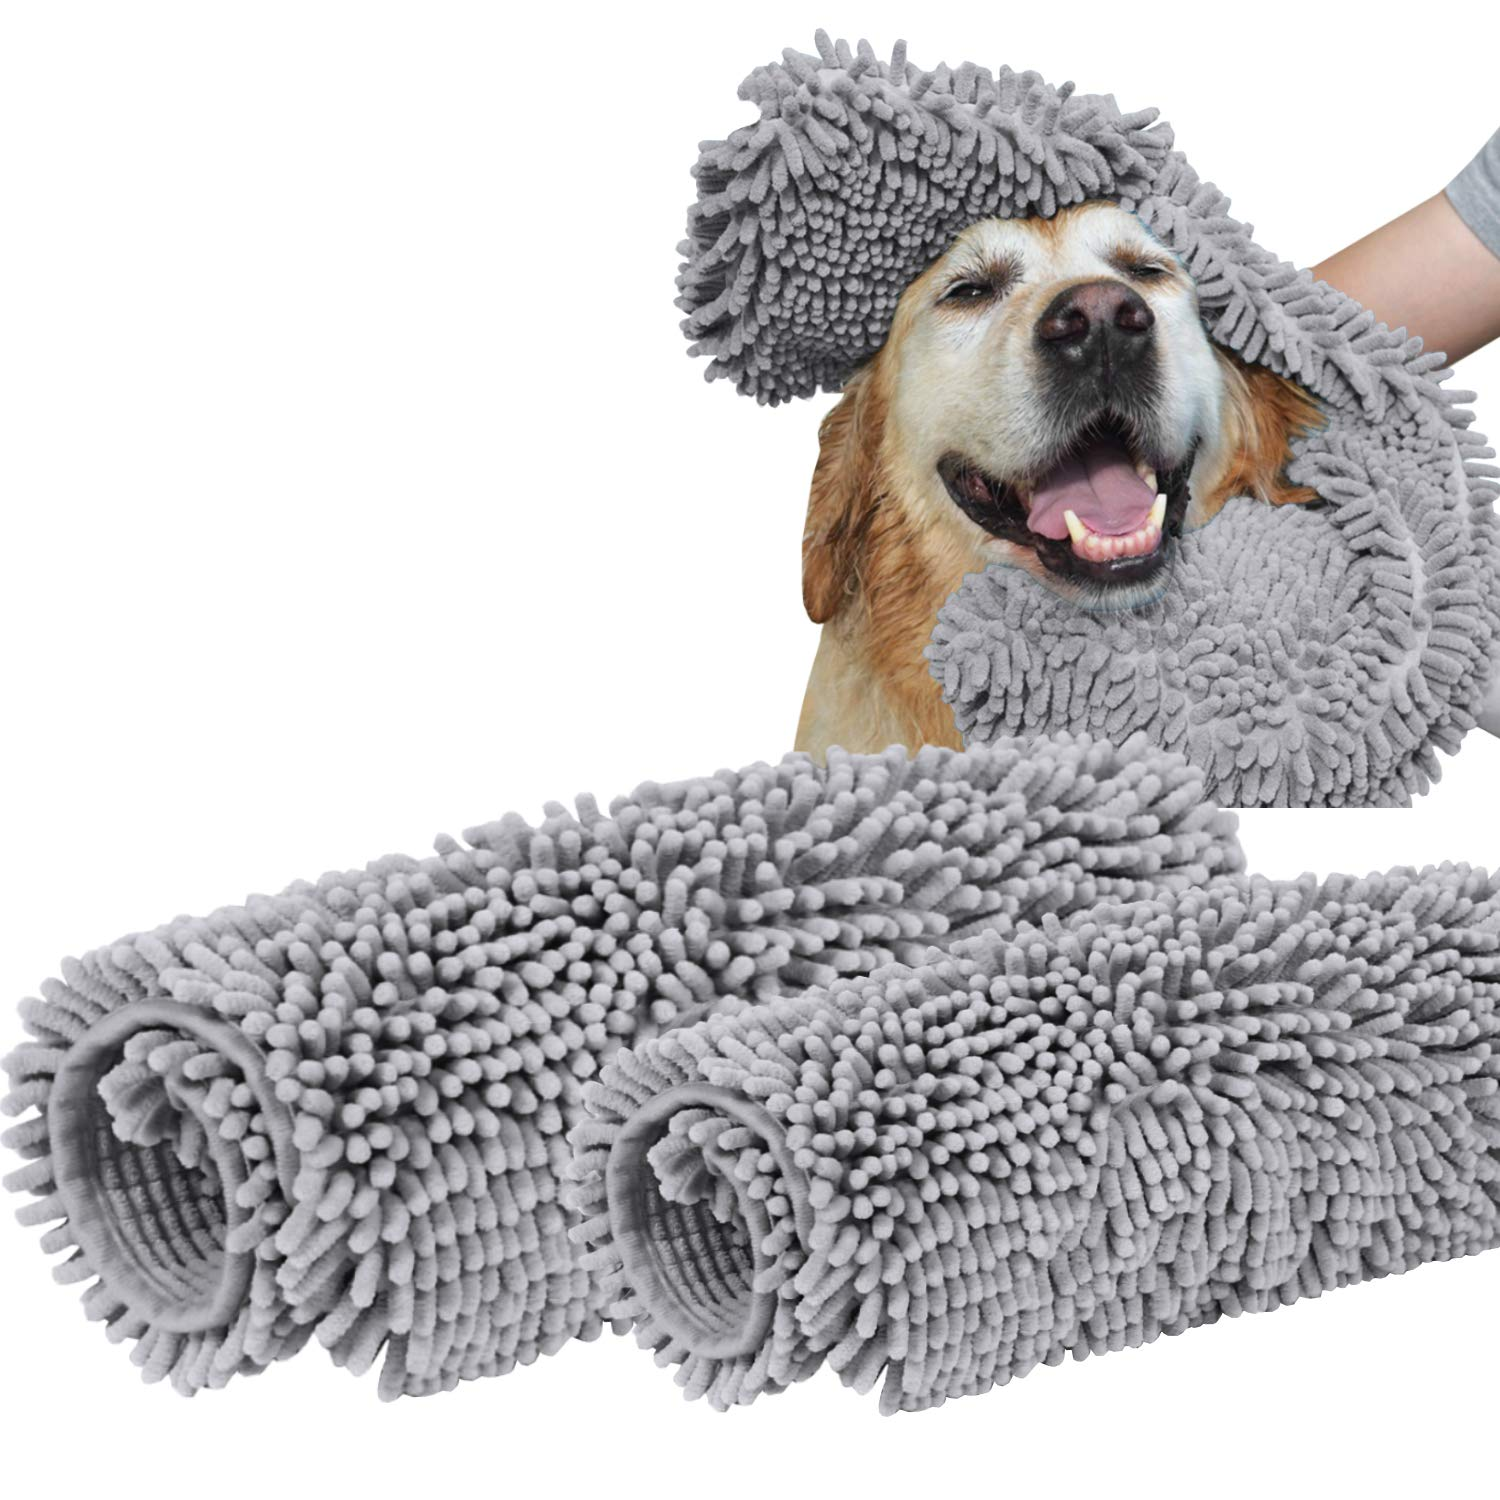 Turquoize Dog Pet Bath Towel 100% Microfiber Ultra Absorbent Quick Dry Towel (2 Pack) 32-Inch by 16-Inch Plus 24-Inch by 14-Inch Soft Chenille with Hand Pockets Gray